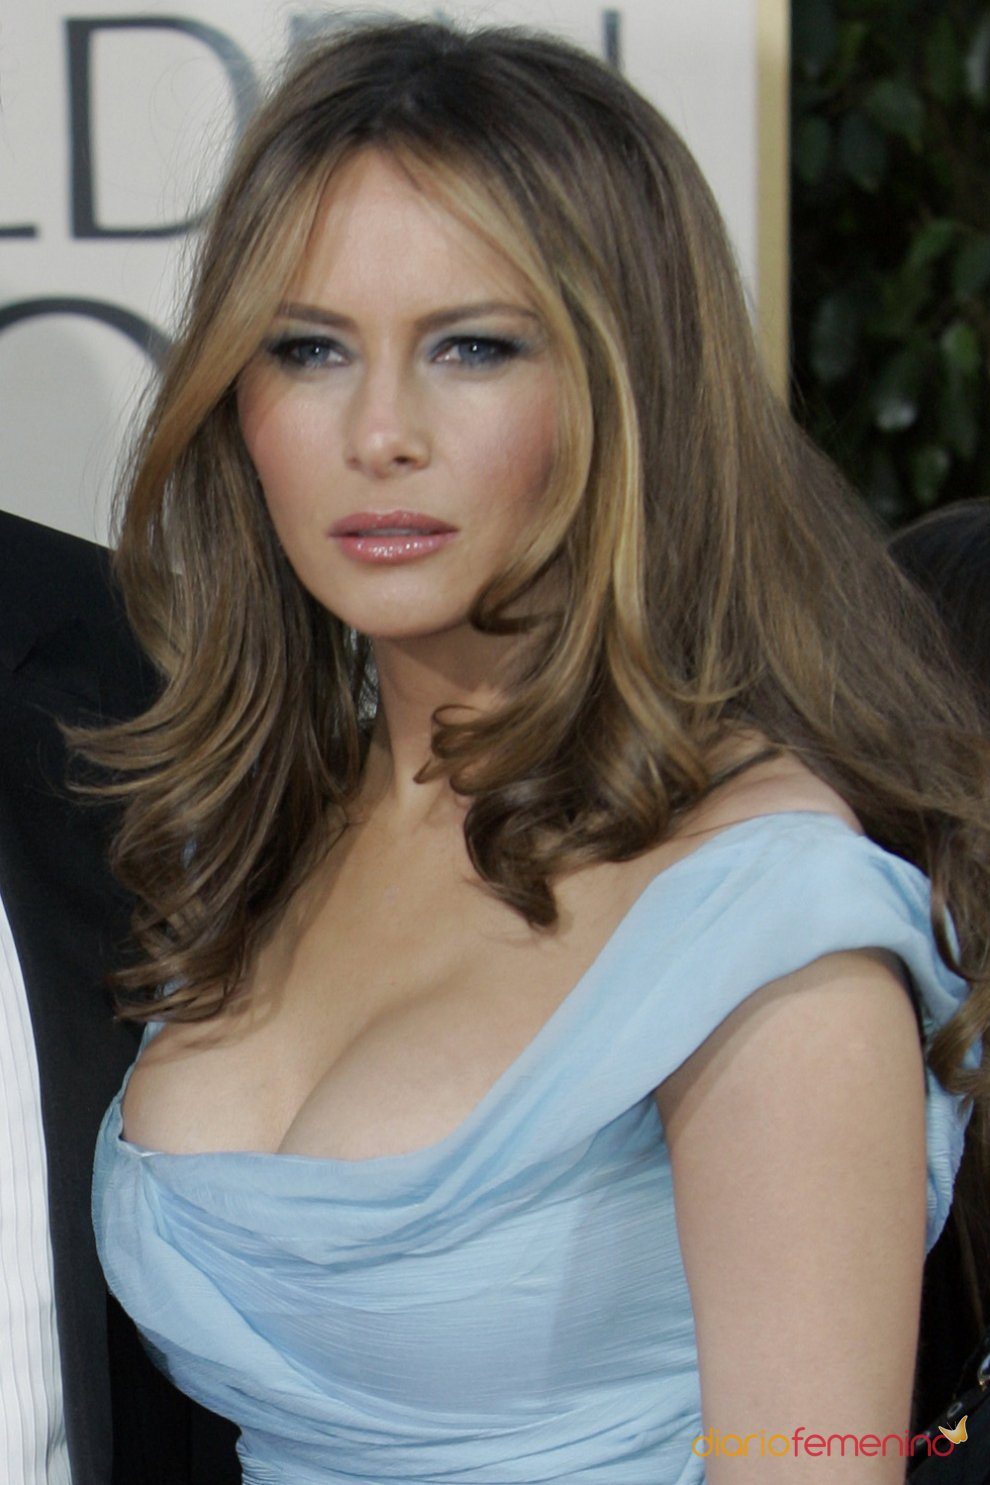 Melania Trump sexy and hot pic